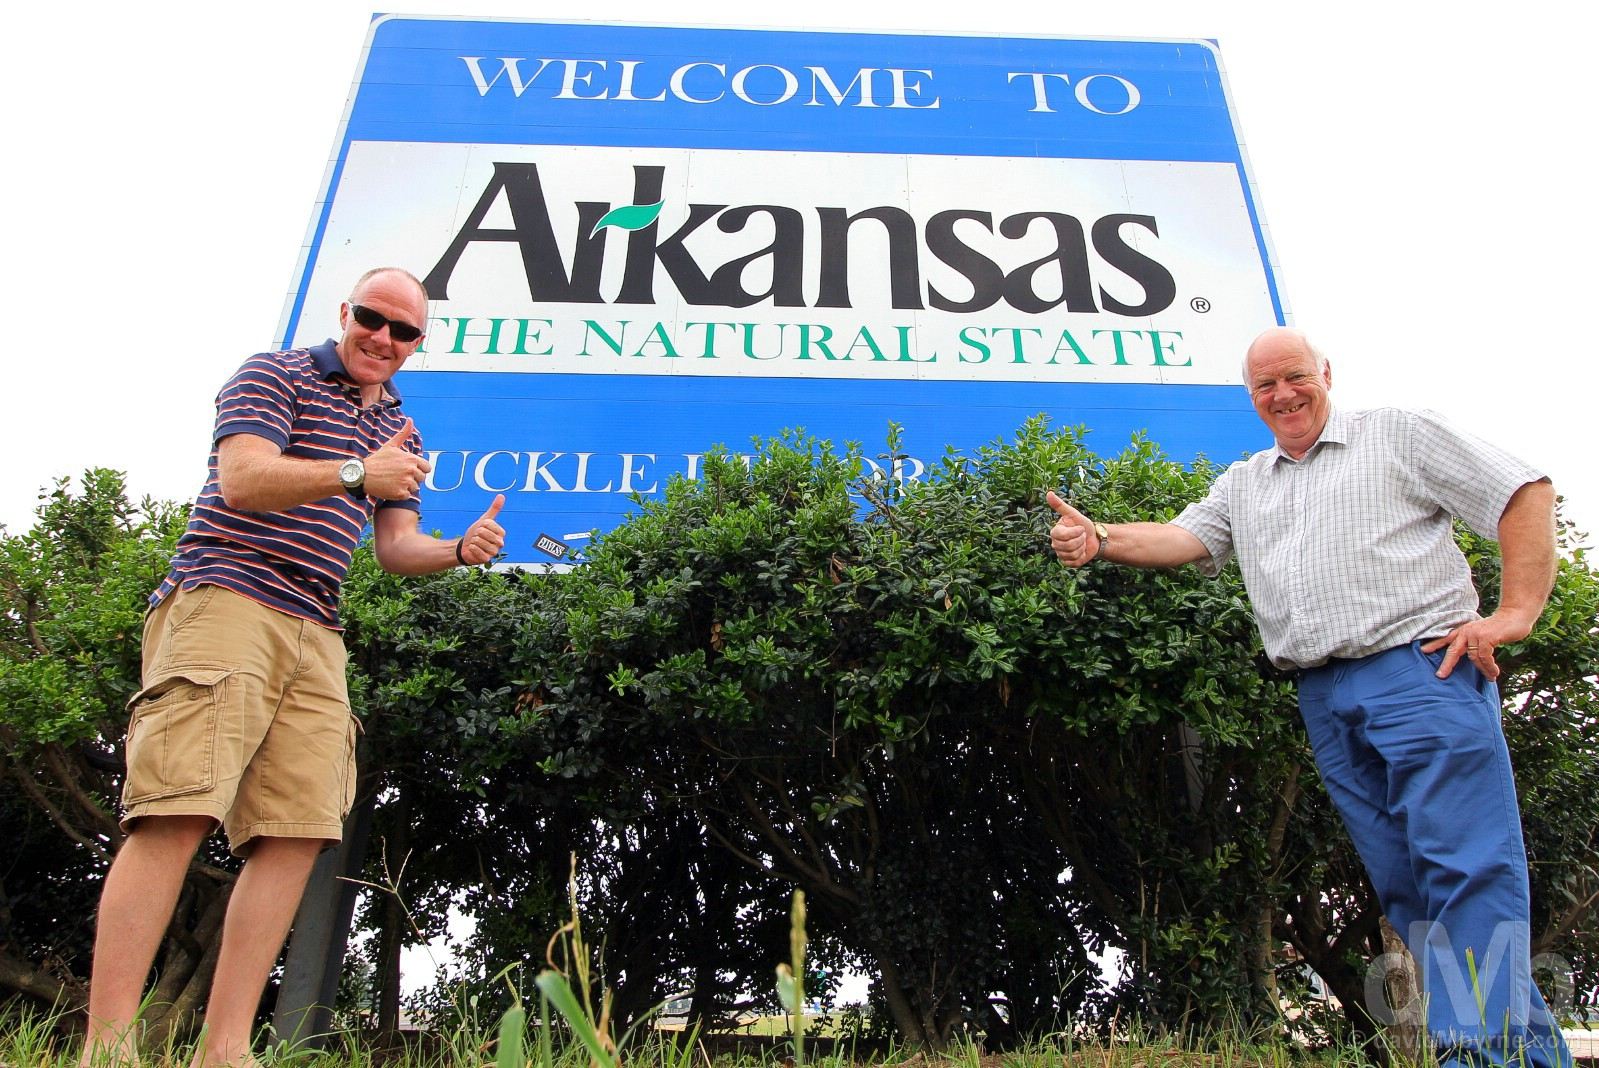 Welcome to Arkansas. At the Missouri-Arkansas state line, Interstate 55. September 18, 2016.